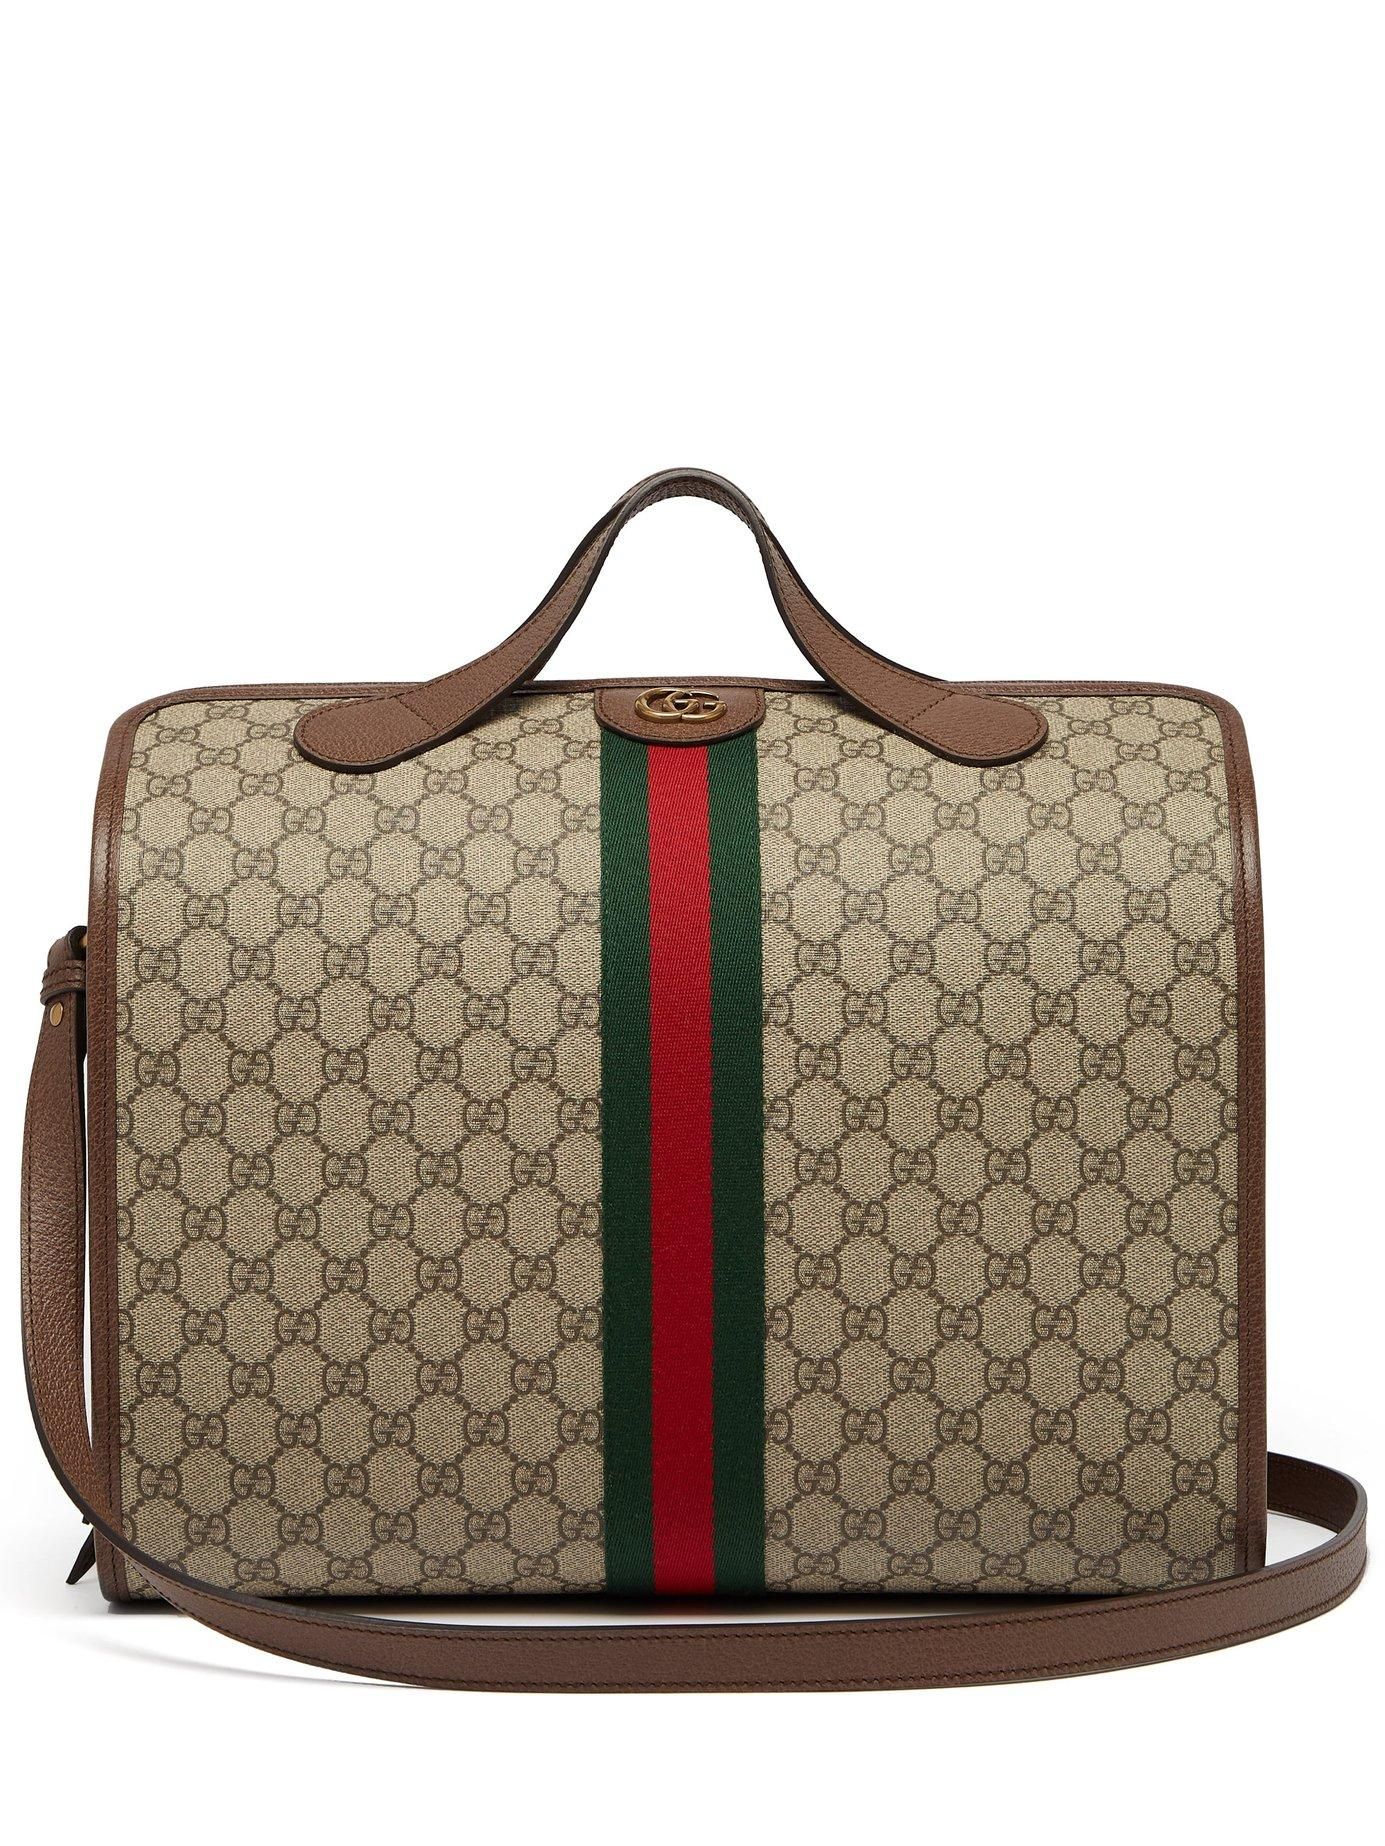 030f9ea0d5c4 Lyst - Gucci Ophidia Gg Supreme Holdall in Natural for Men